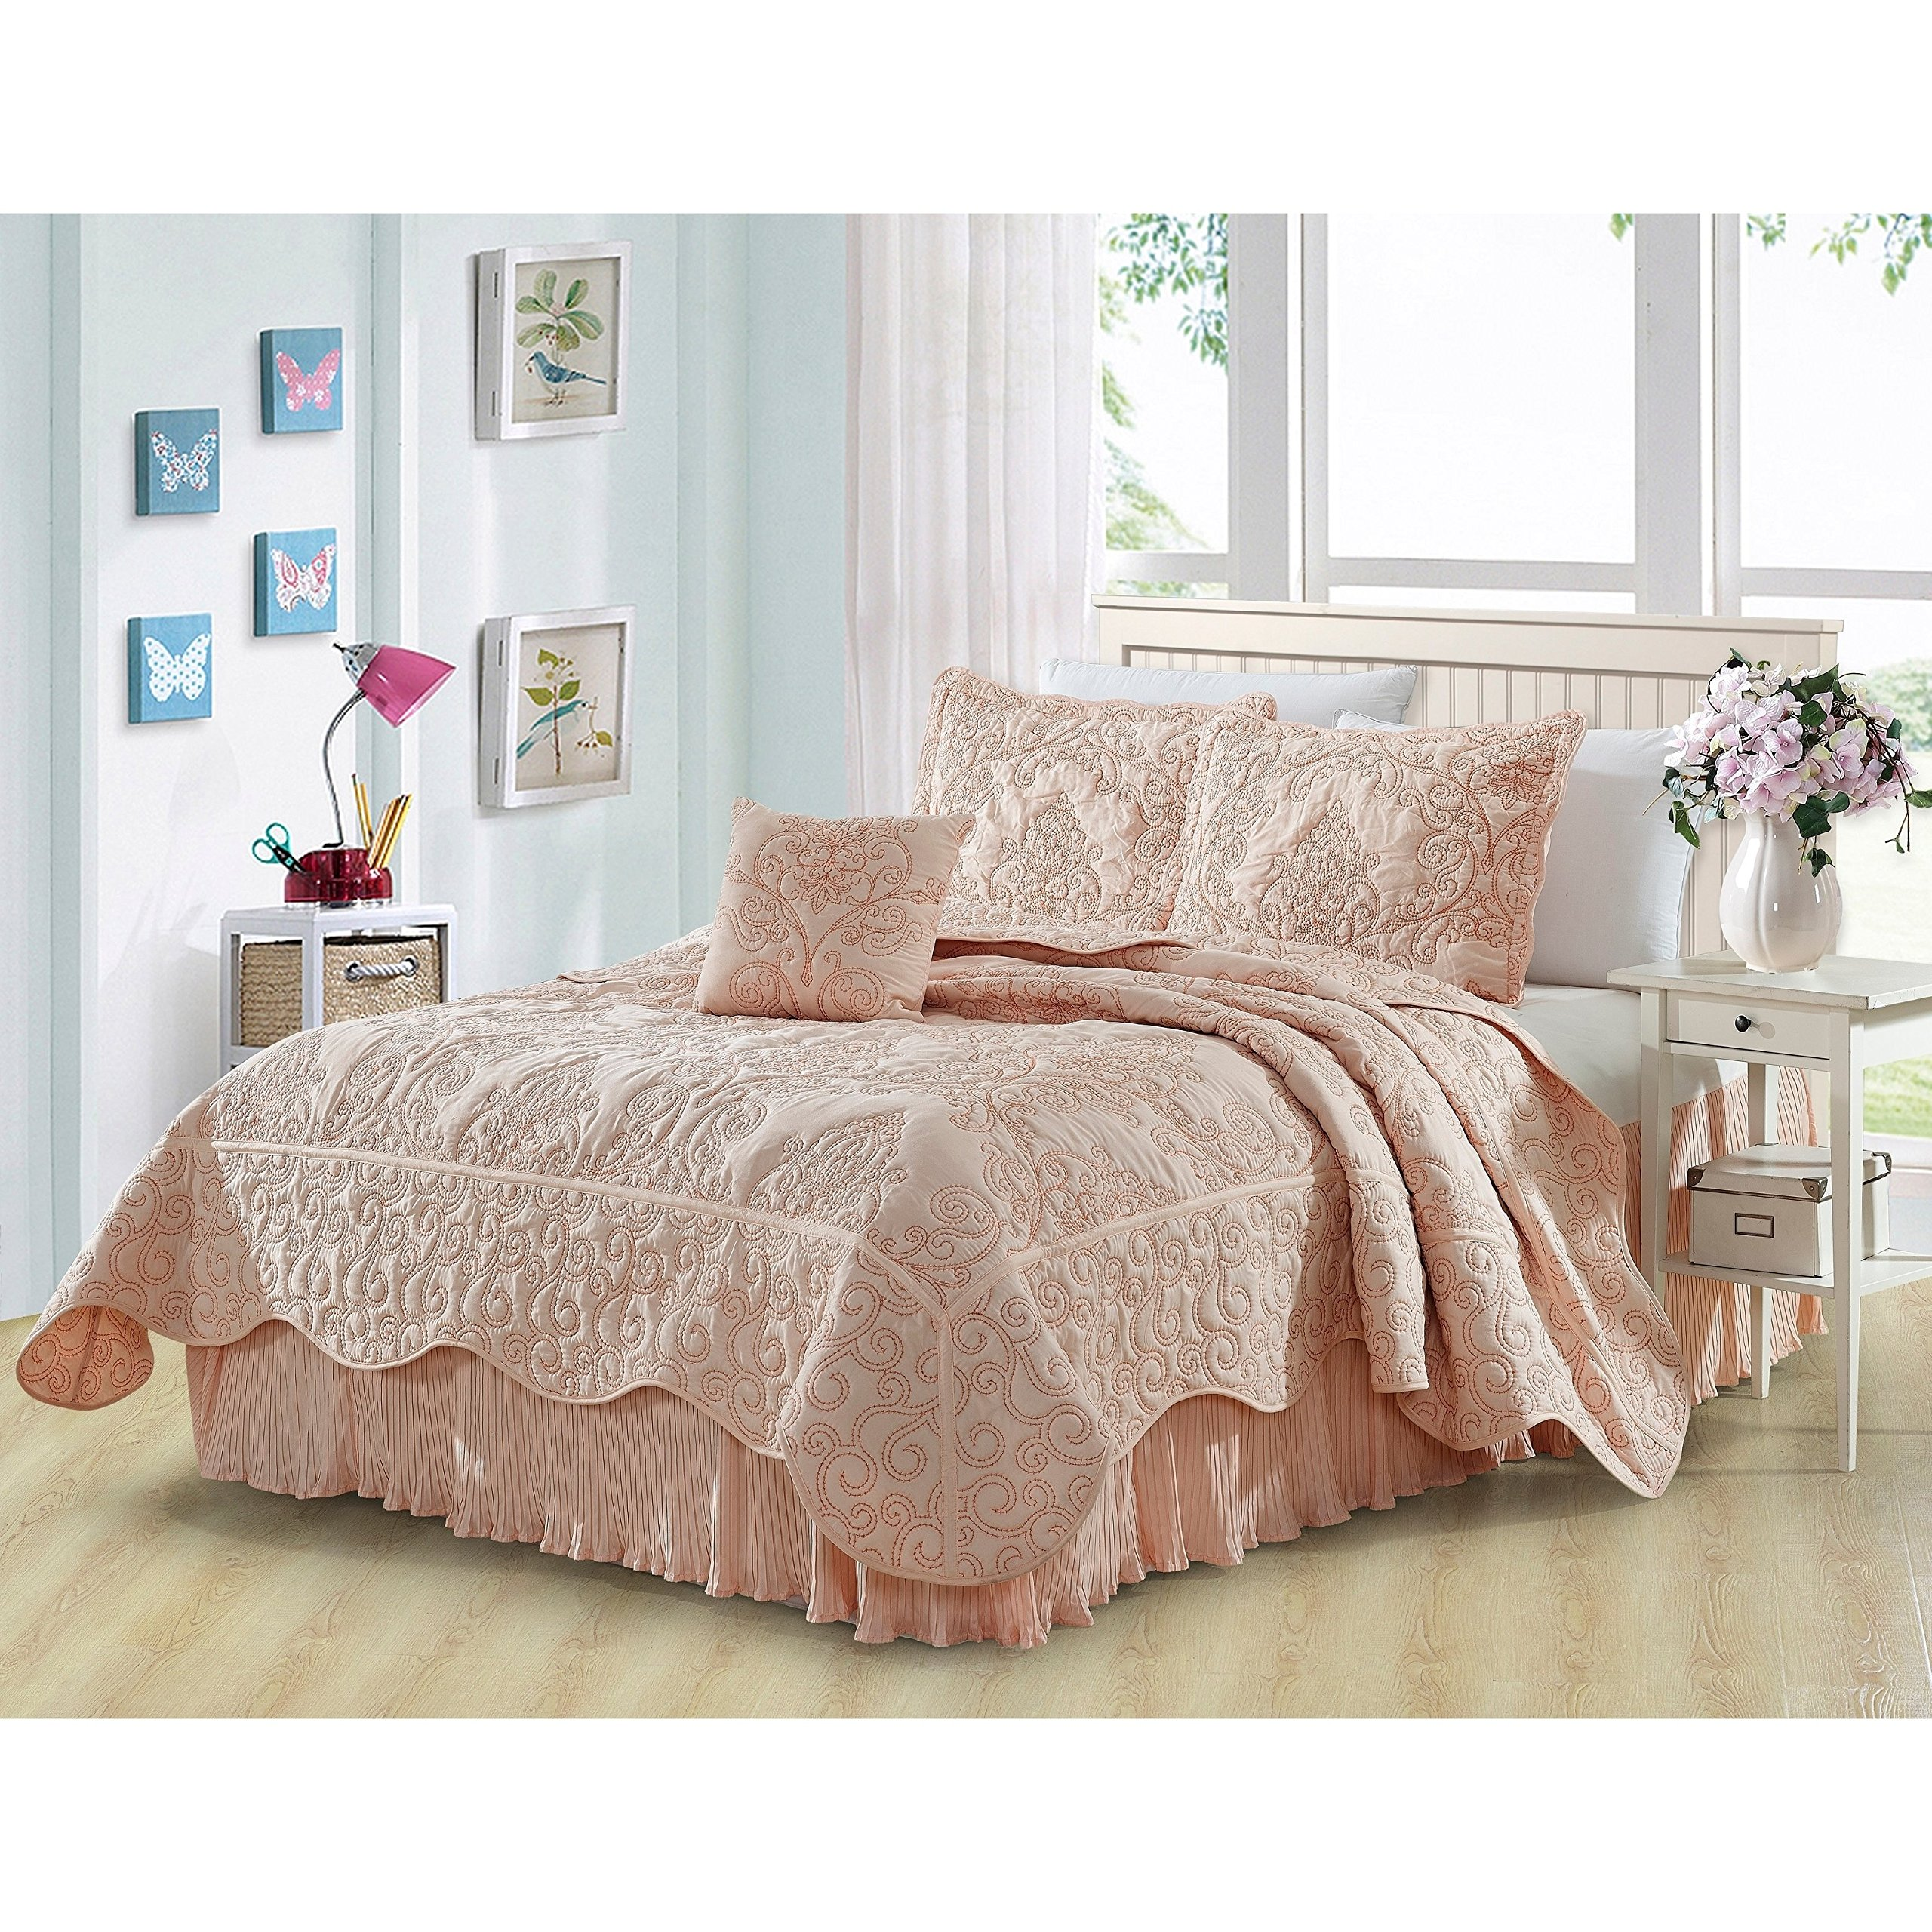 5 Piece Pink Damask Full Queen Coverlet Set, Coastal Flowers Embroidered Floral Themed Bedding, Motif Flower Quilted Pattern Elegant Classy Vintage Style Cross Stitching Bed Skirt, Polyester